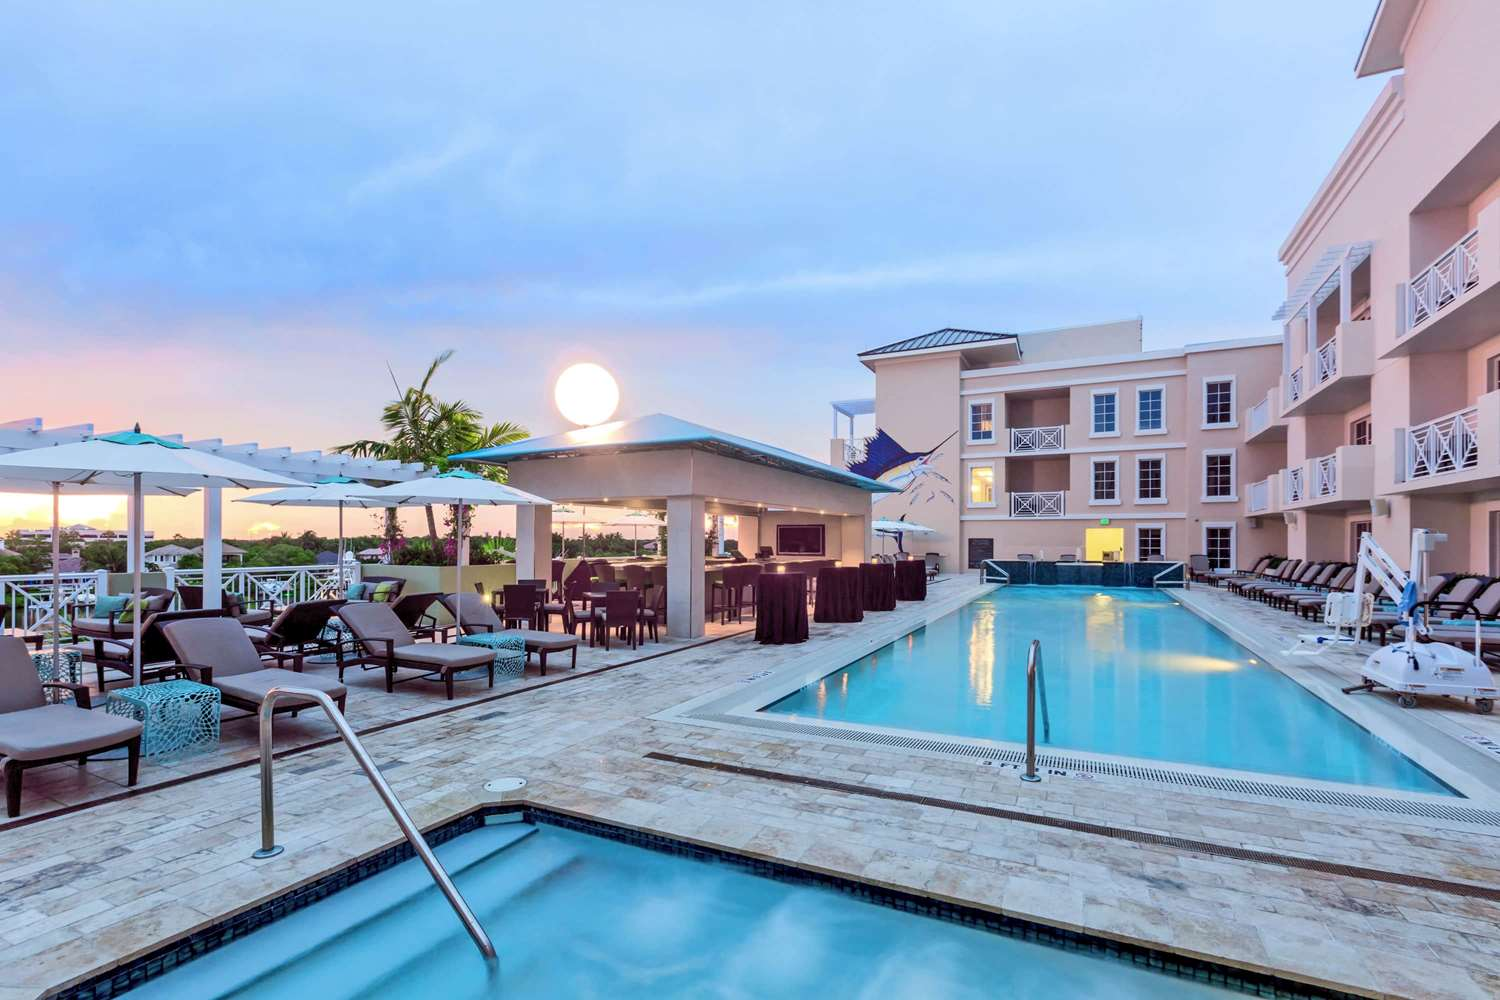 Pool - Wyndham Grand Jupiter at Harbourside Place Hotel